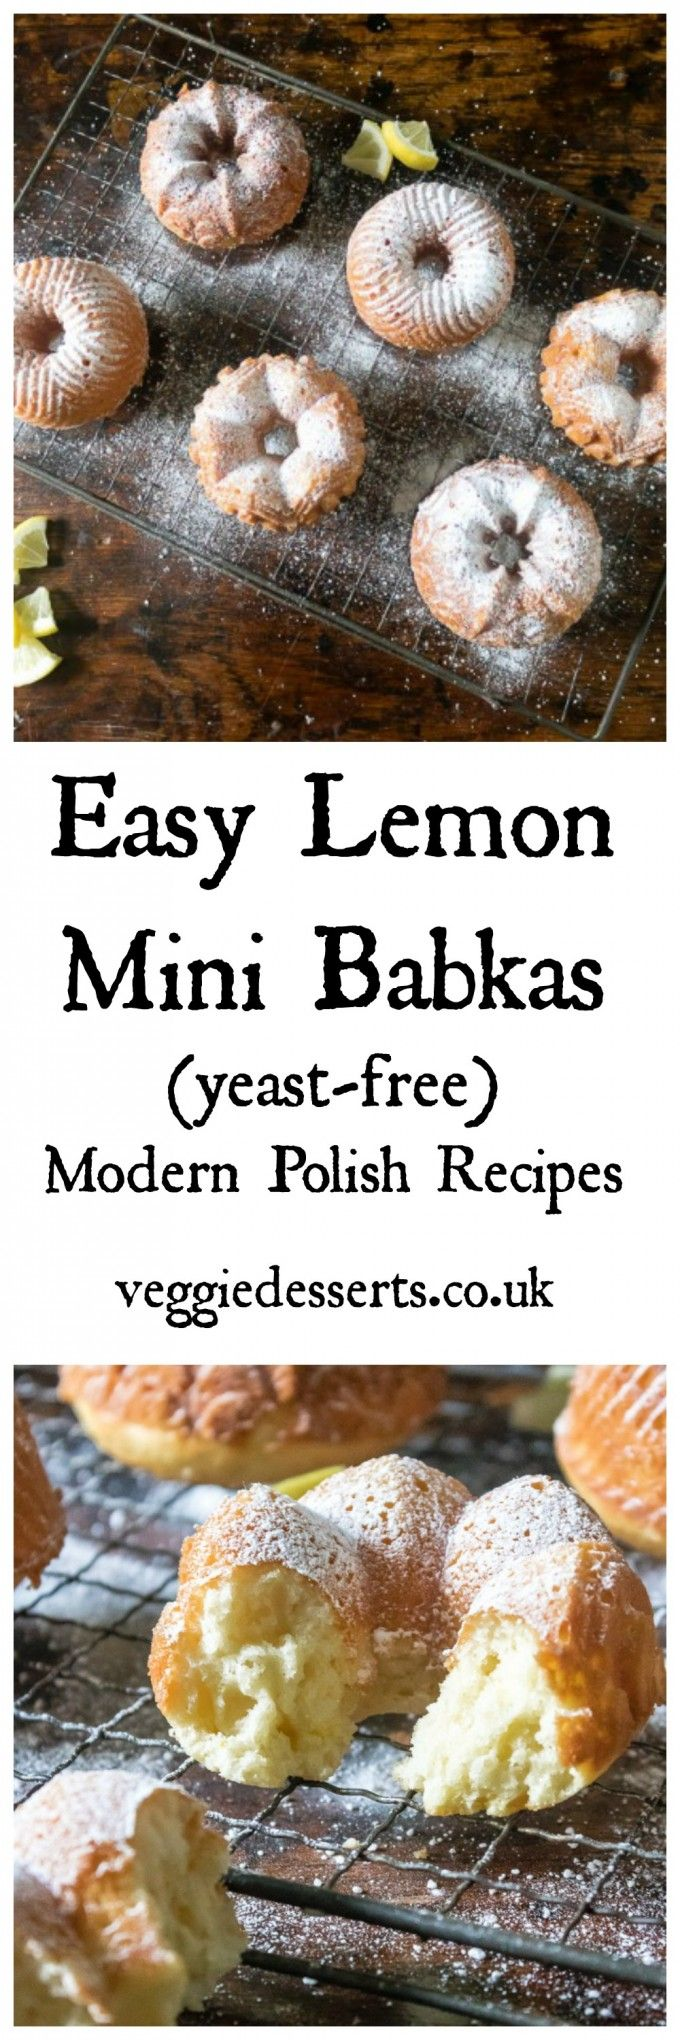 320 best made in poland images on pinterest cooking food kitchens easy lemon mini babkas from wild honey and rye cookbook veggie desserts blog polish dessertspolish recipespolish foodmini forumfinder Image collections